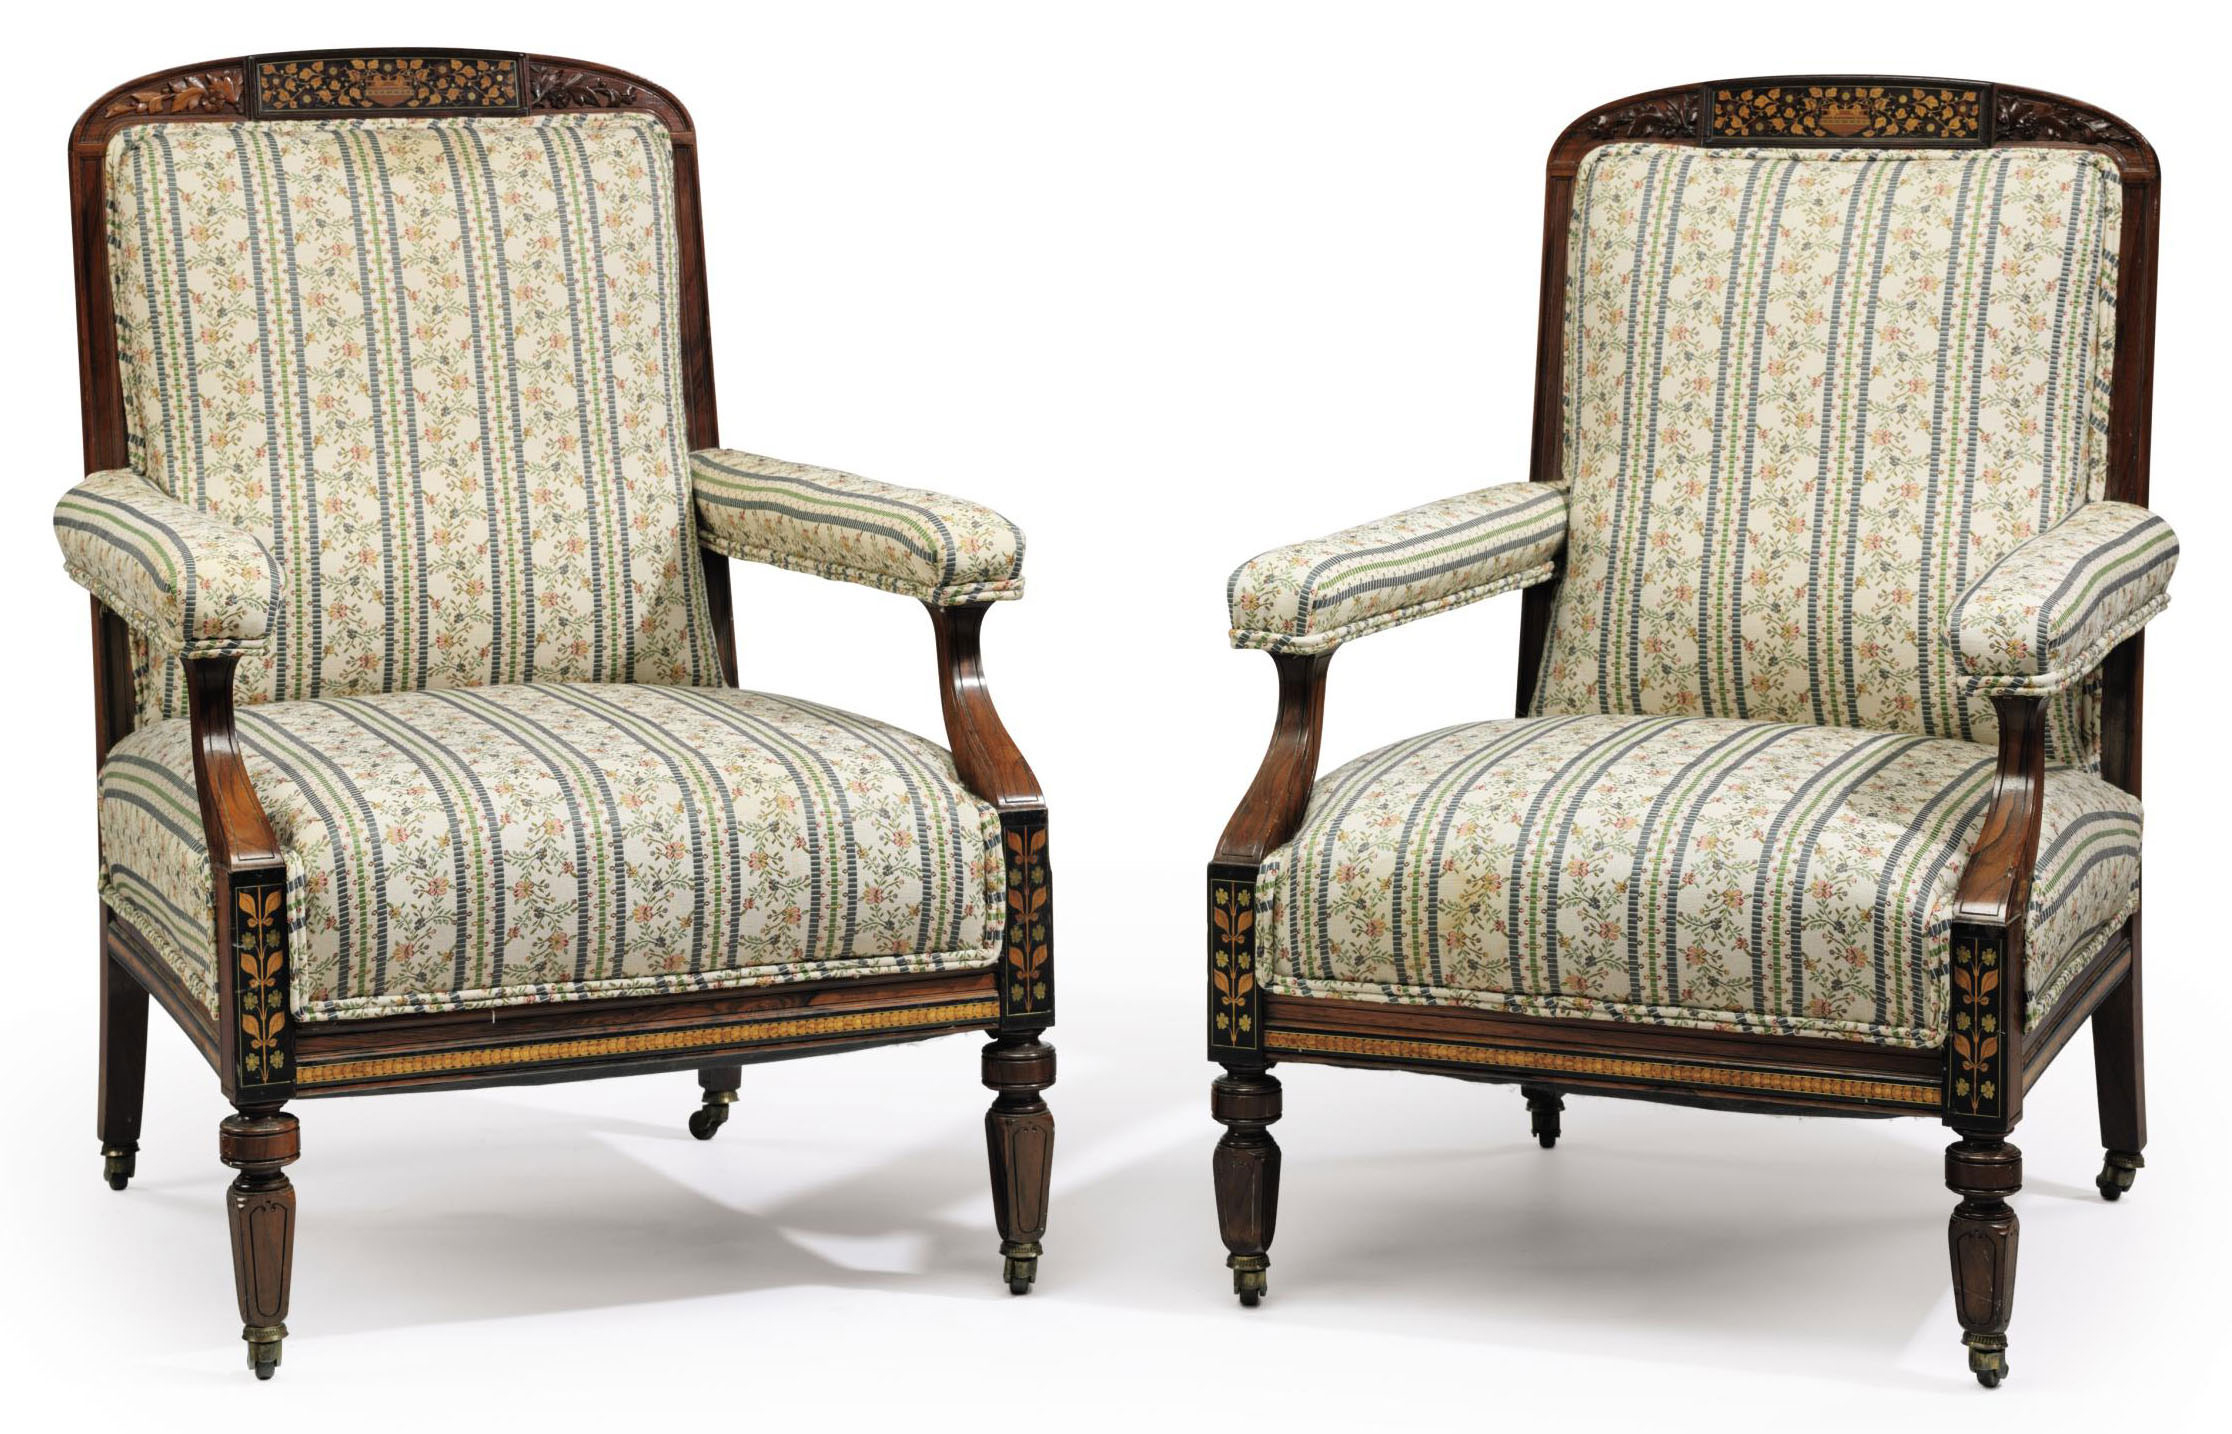 TWO AESTHETIC MOVEMENT AND MARQUETRY-INLAID ROSEWOOD EN SUITE ARMCHAIRS